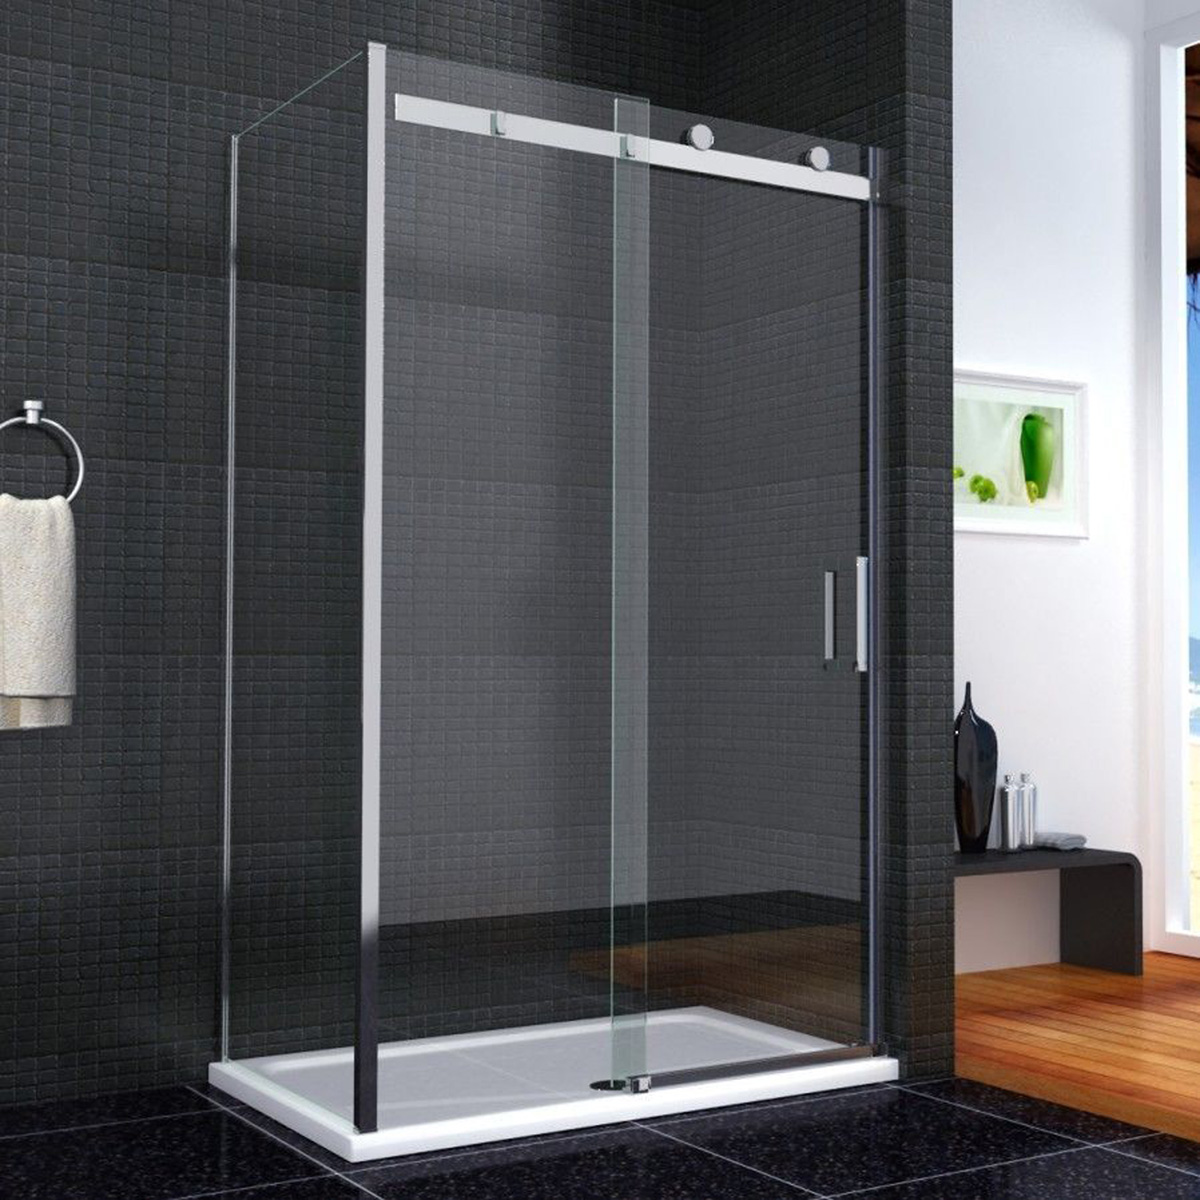 120x90cm duschkabine duschabtrennung dusche schiebet r 8mm nano glas duschwand ebay. Black Bedroom Furniture Sets. Home Design Ideas